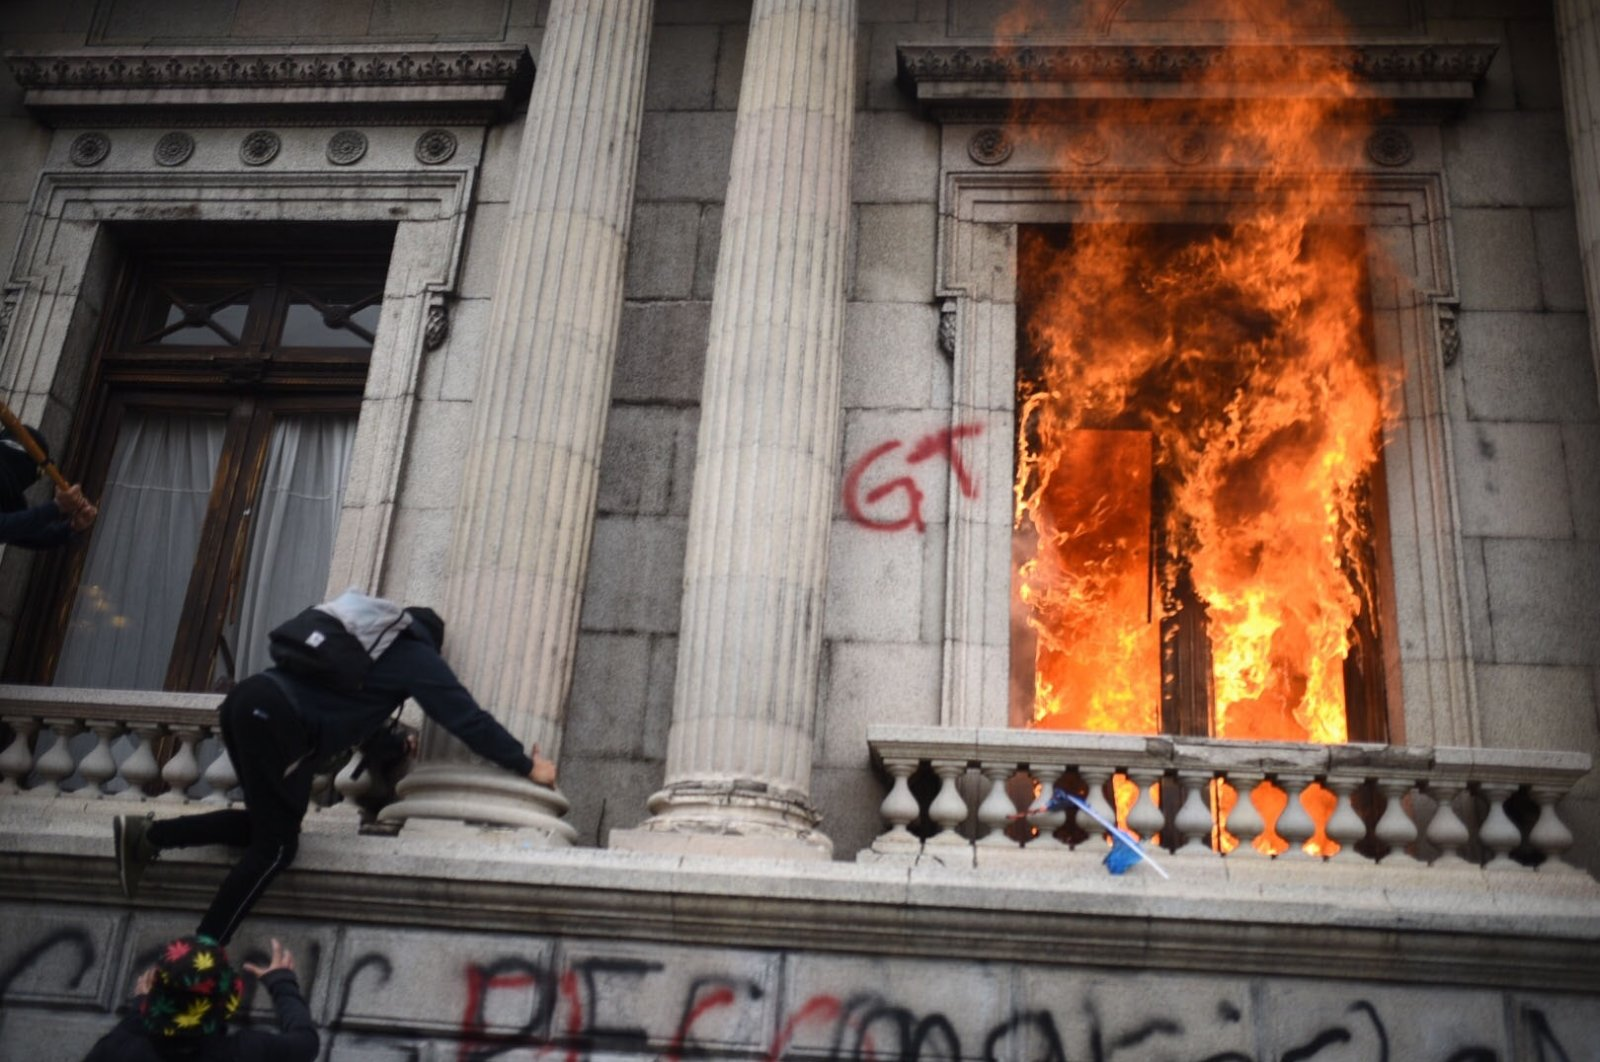 The Guatemalan congress building is set on fire during an anti-government protest, Guatemala City, Nov. 21, 2020. (EPA Photo)